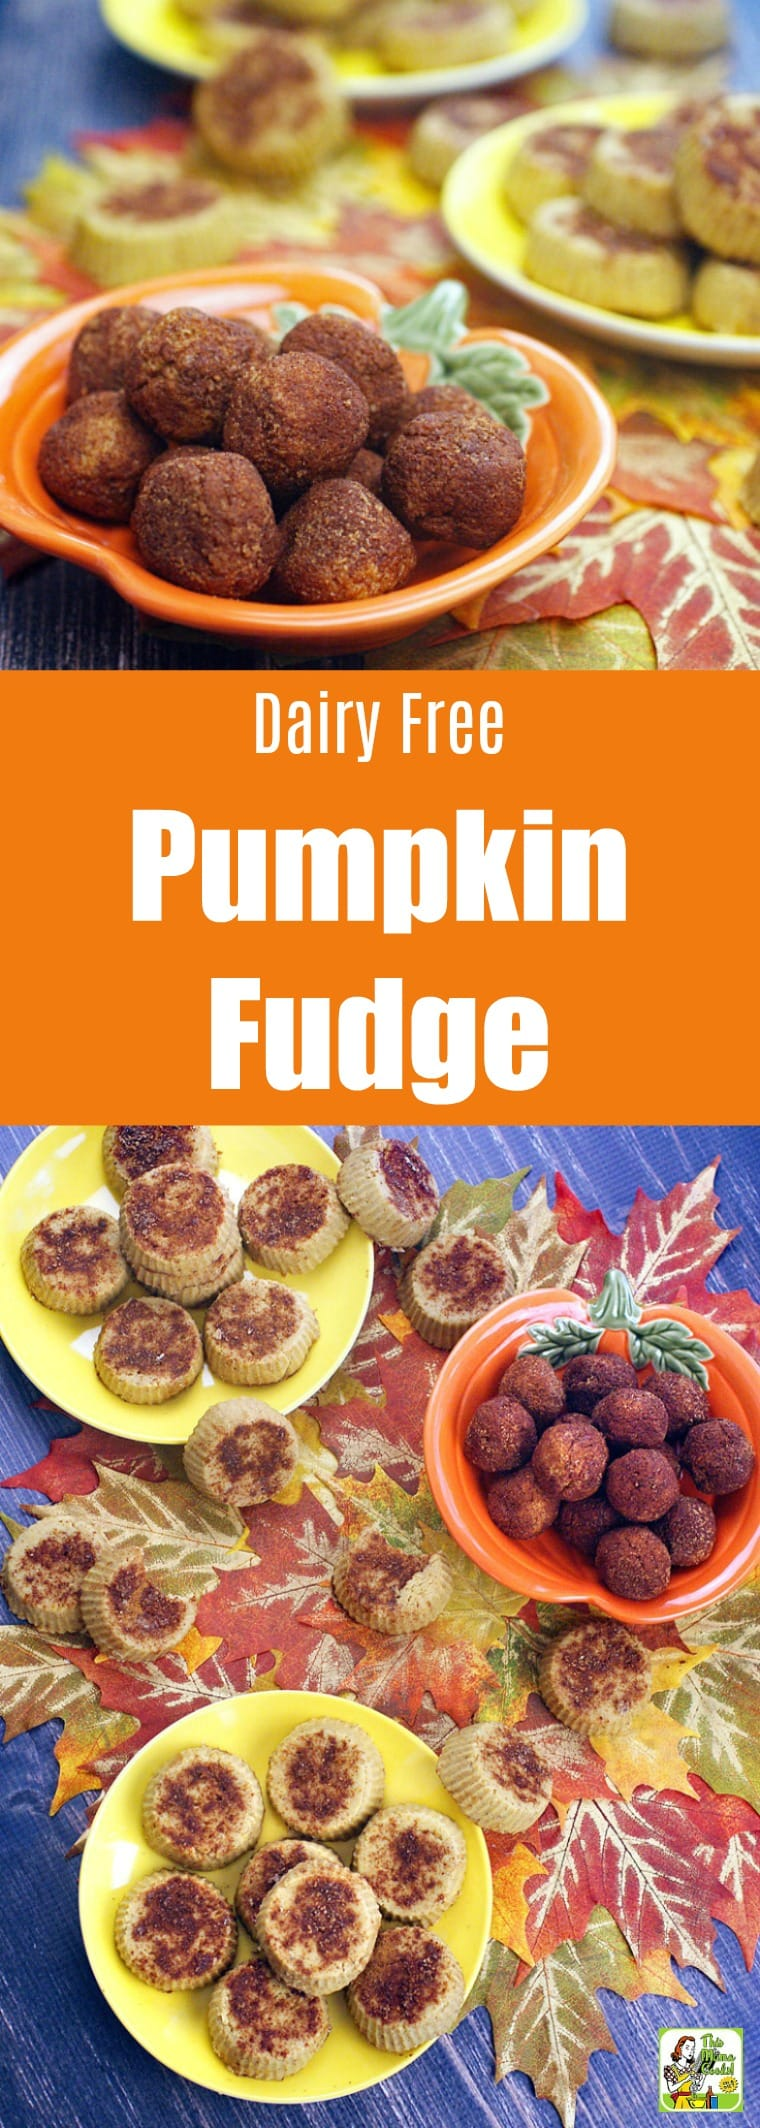 Dairy Free Pumpkin Fudge Recipe